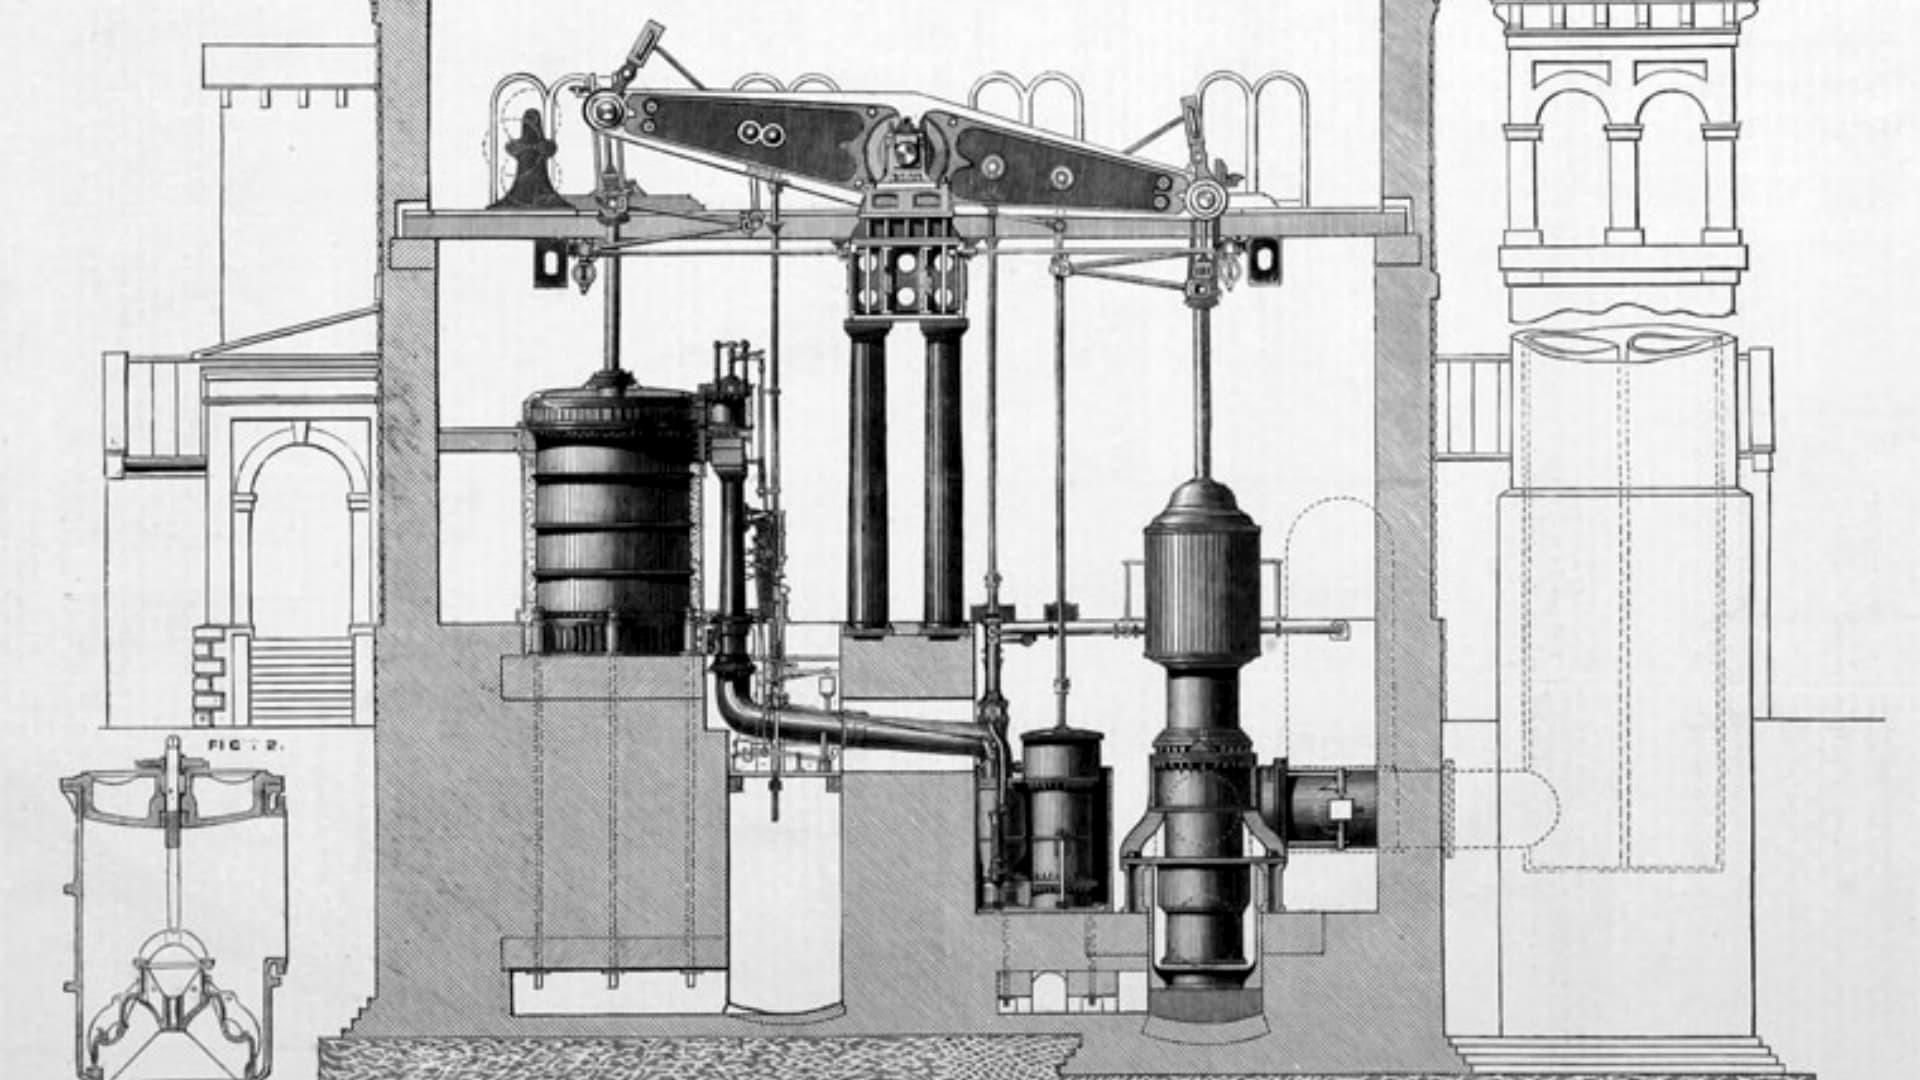 — Redesigning the Grand Junction 100-Inch Engine Experience